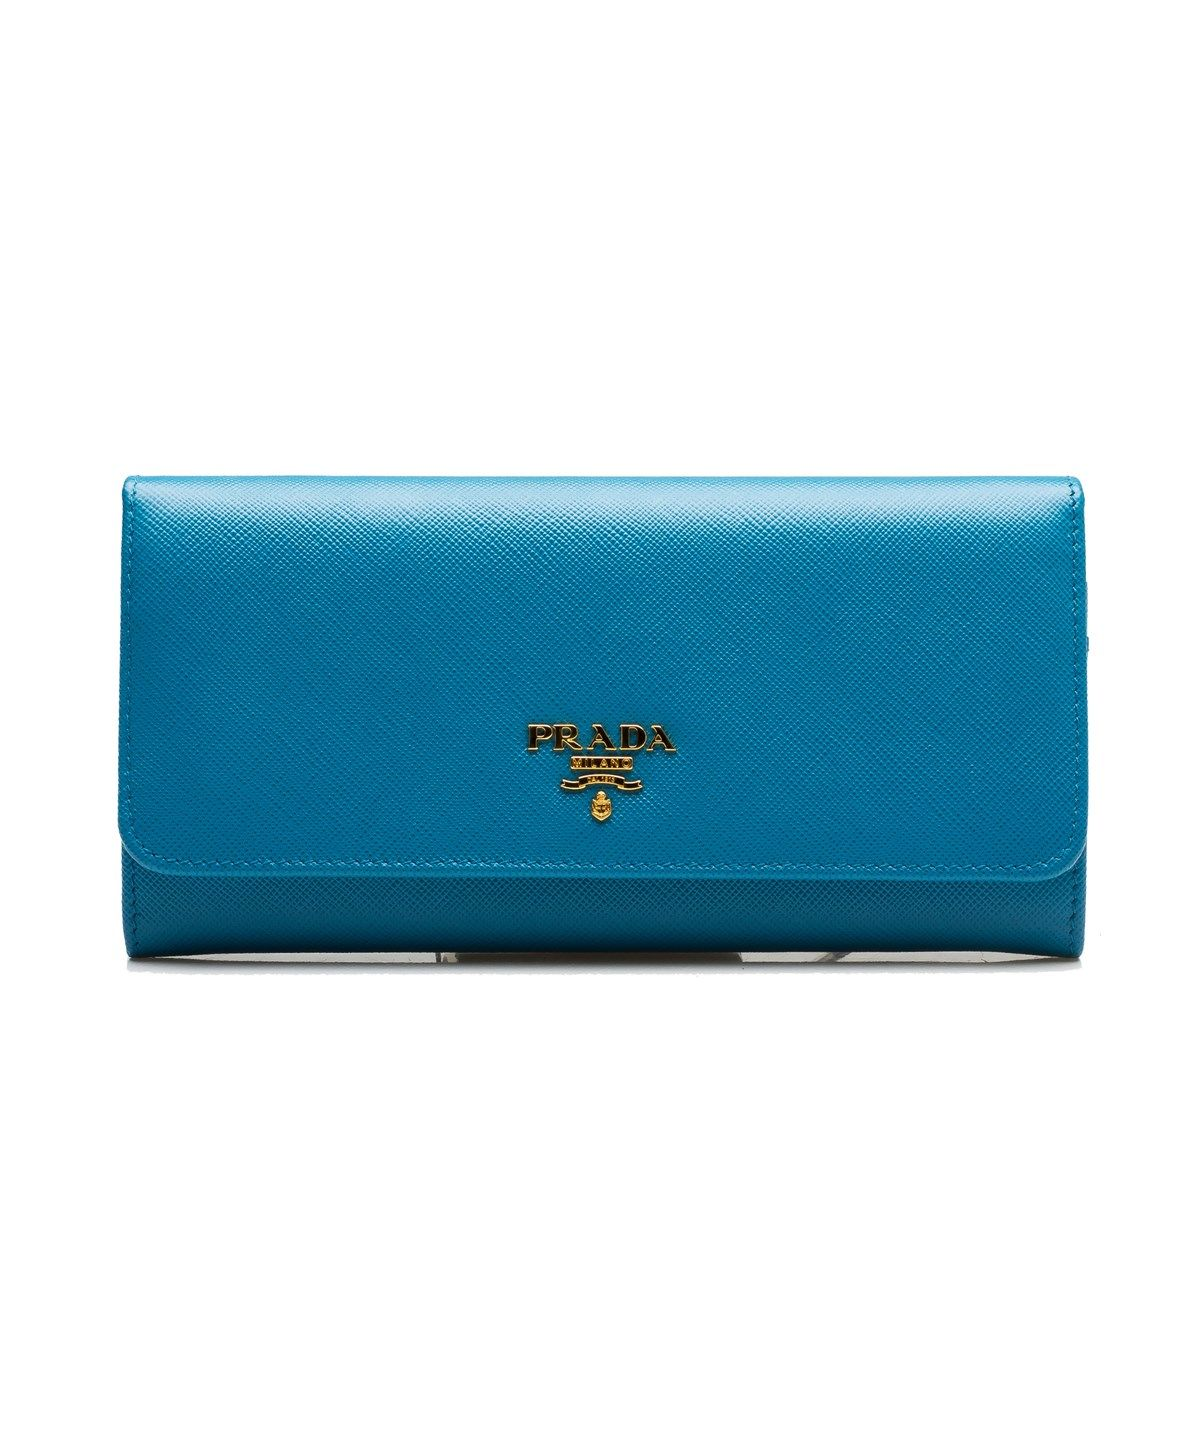 f65757d33cbe PRADA PRADA WOMEN'S CONTINENTAL FLAP SAFFIANO LEATHER WALLET HEAVENLY  BLUE'. #prada #clutches & evening bags